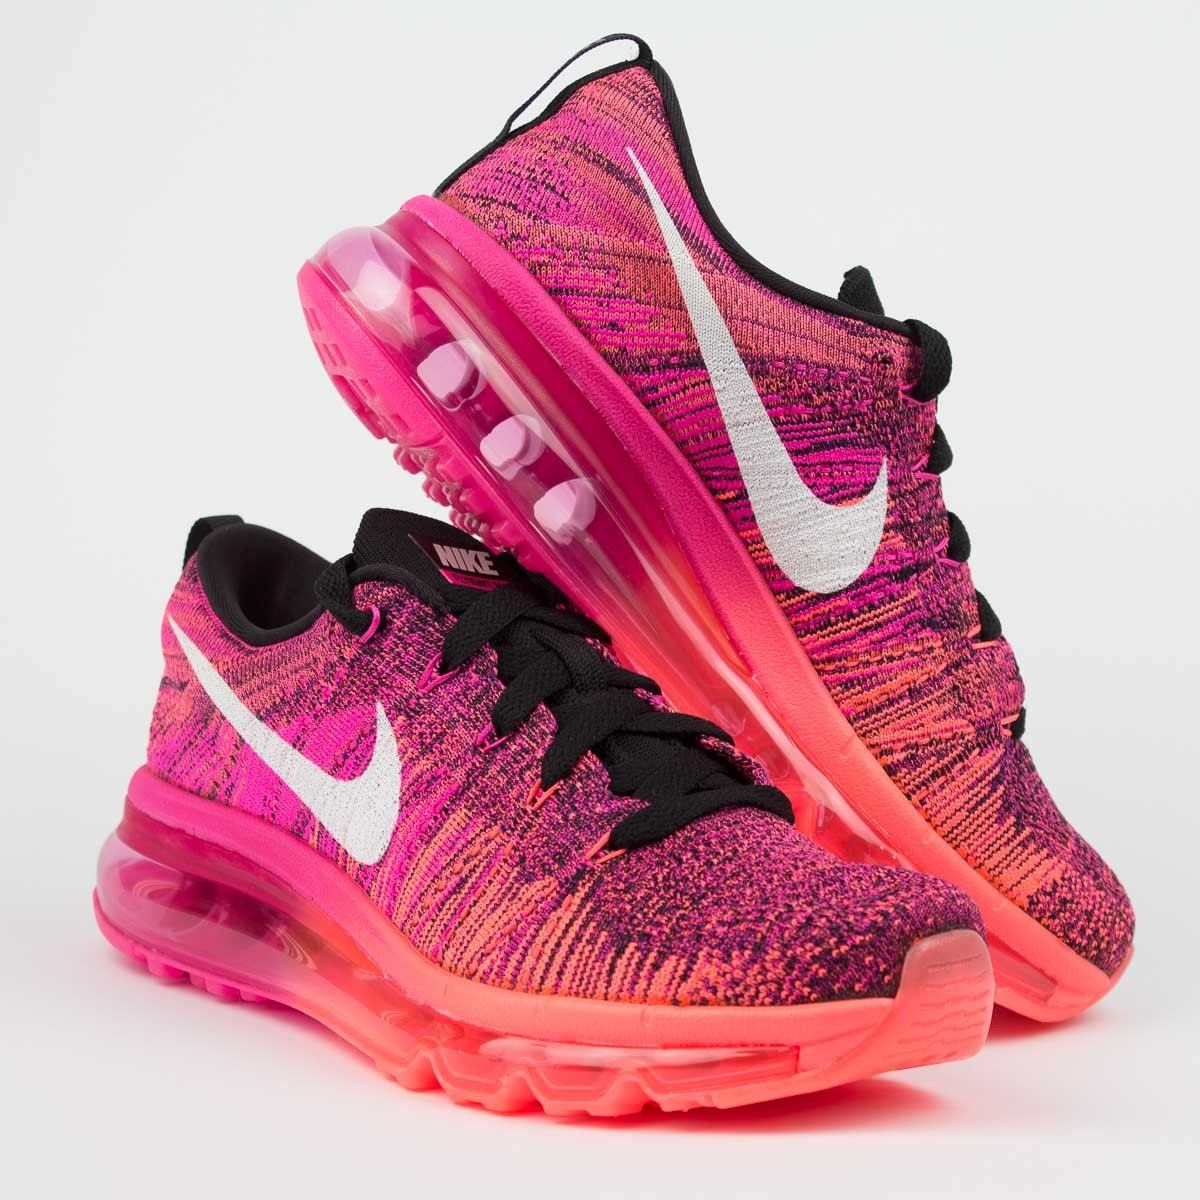 Chaussures Nike Chaussures Flyknit Libre Air Max Du Marché